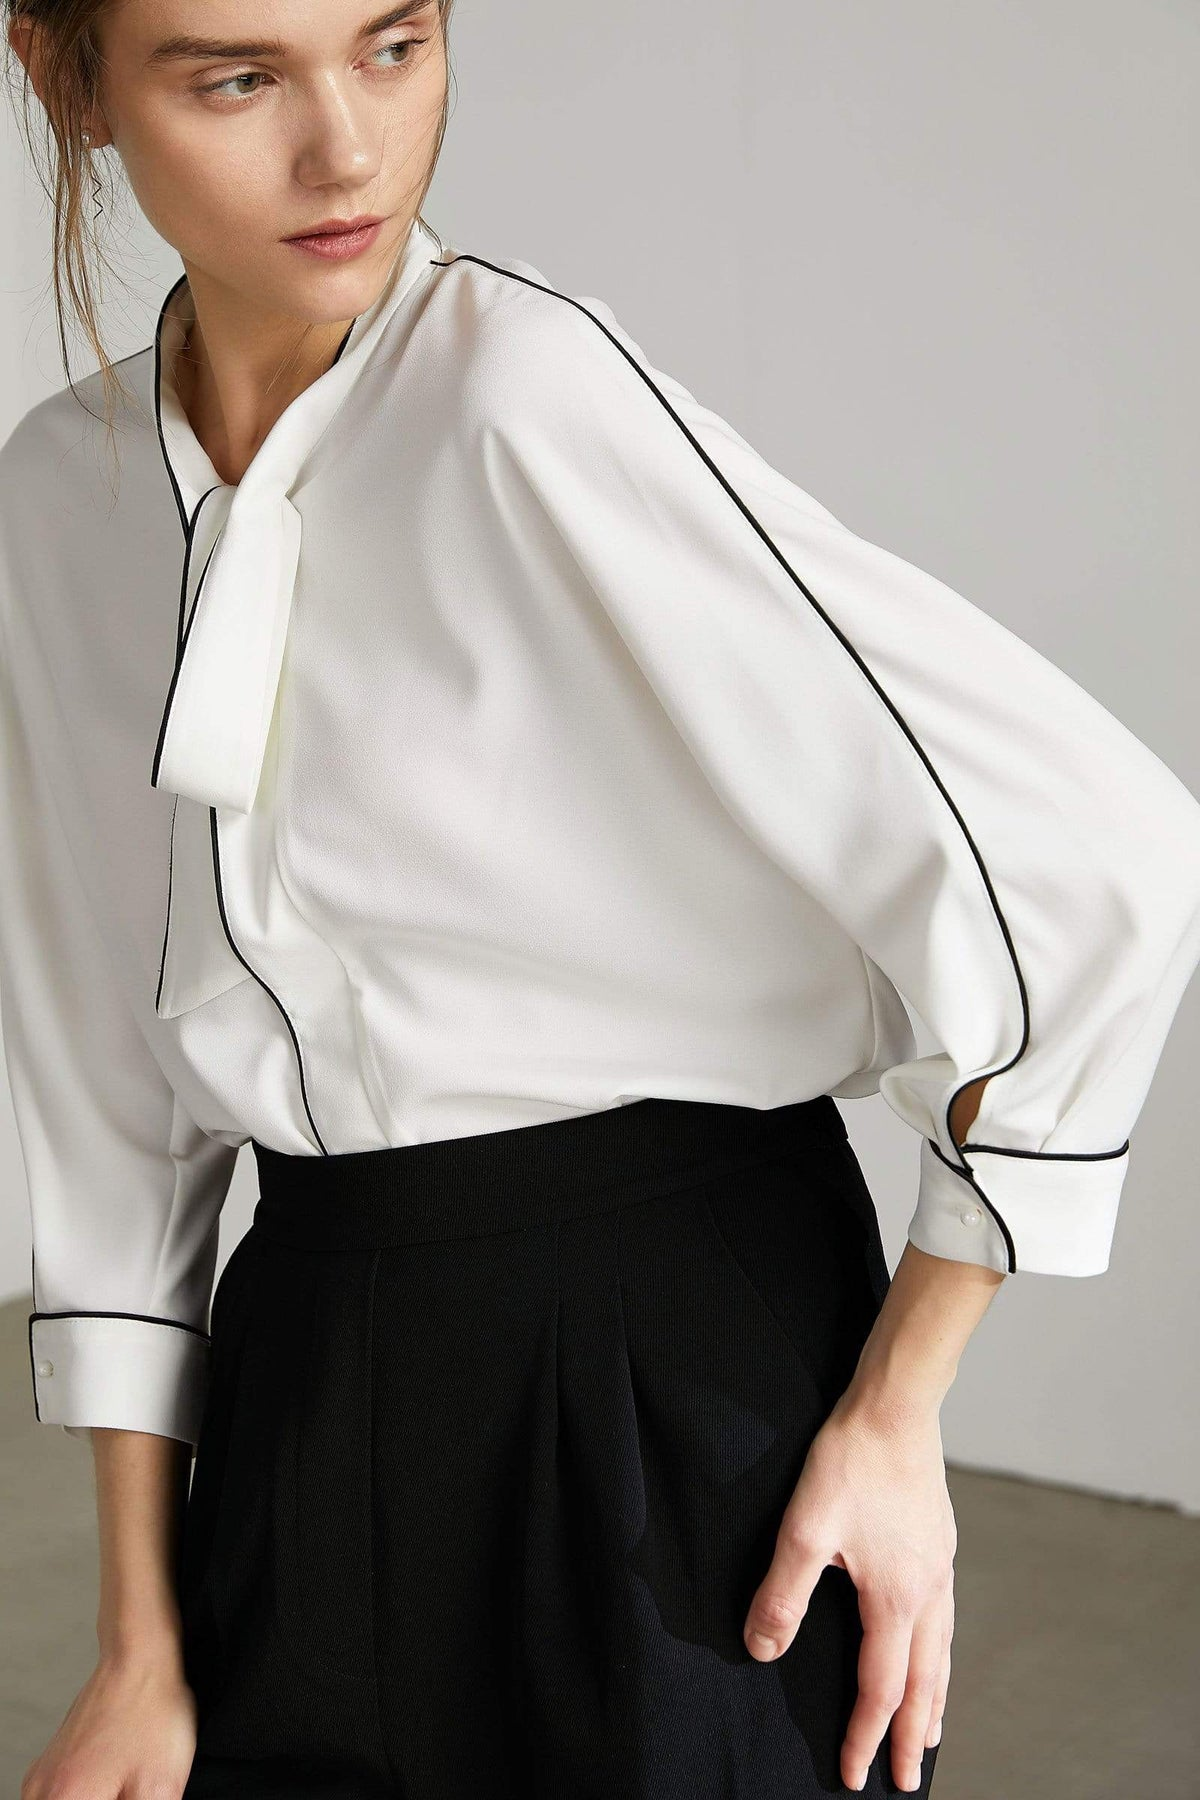 Bolt White Contrast Top